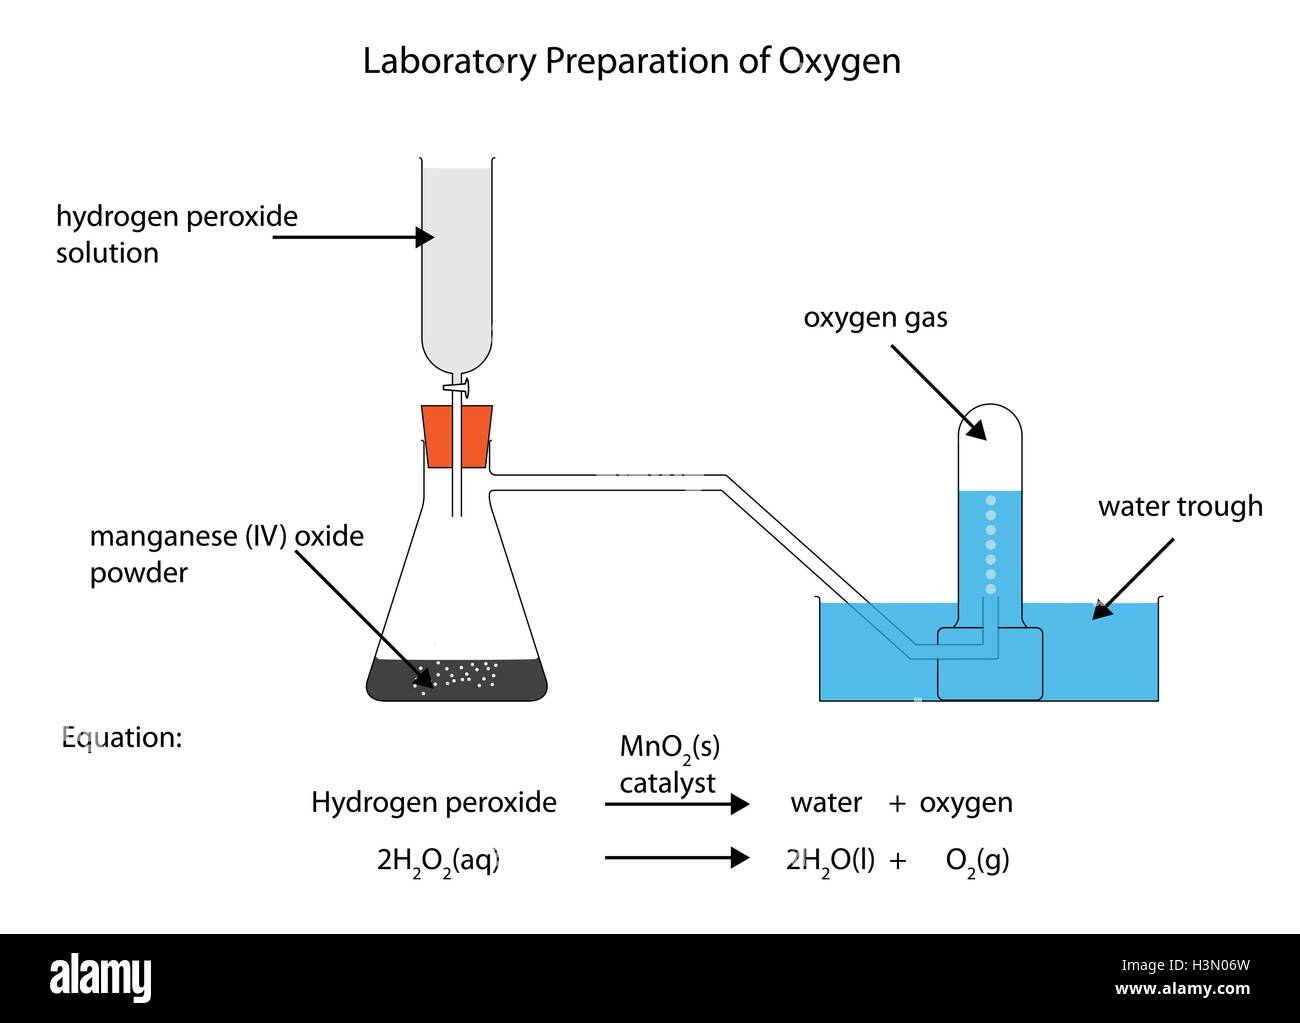 Diagram For Oxygen Preparation Data Schema Atom Full Labelled Of The Laboratory Model Carbon Cycle